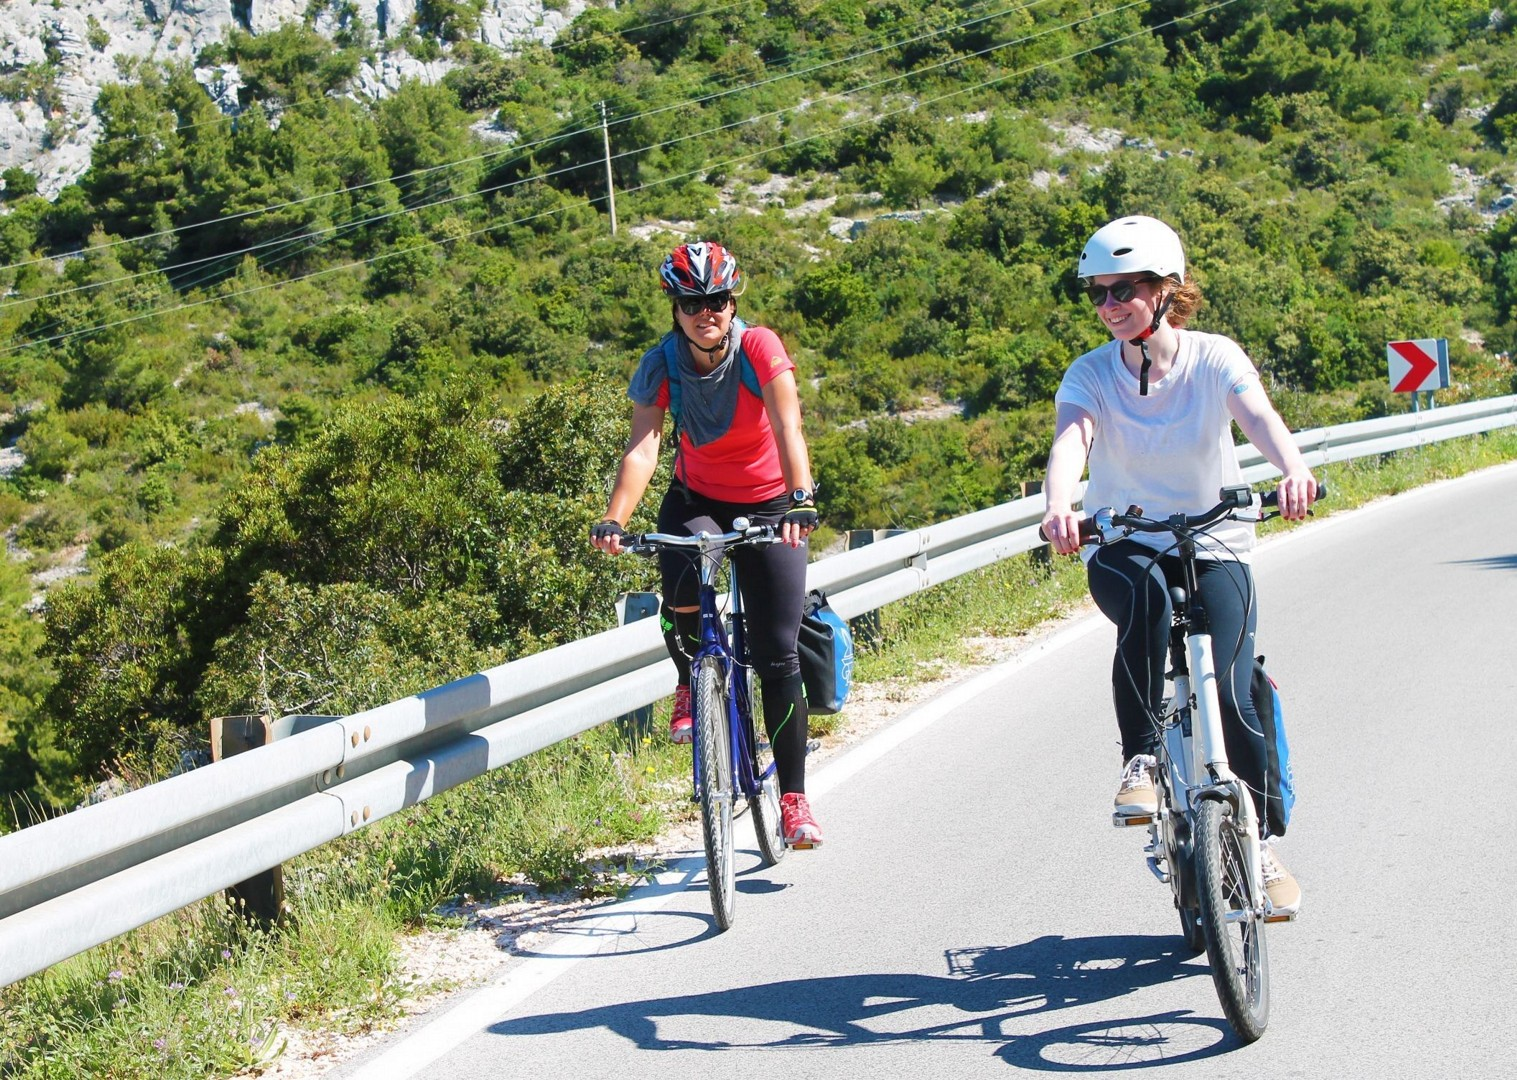 leisure-cycling-holiday-yacht-accommodation-fun-filled.jpg - Croatia - Dalmatian National Parks and Islands Plus - Bike and Boat Holiday - Leisure Cycling